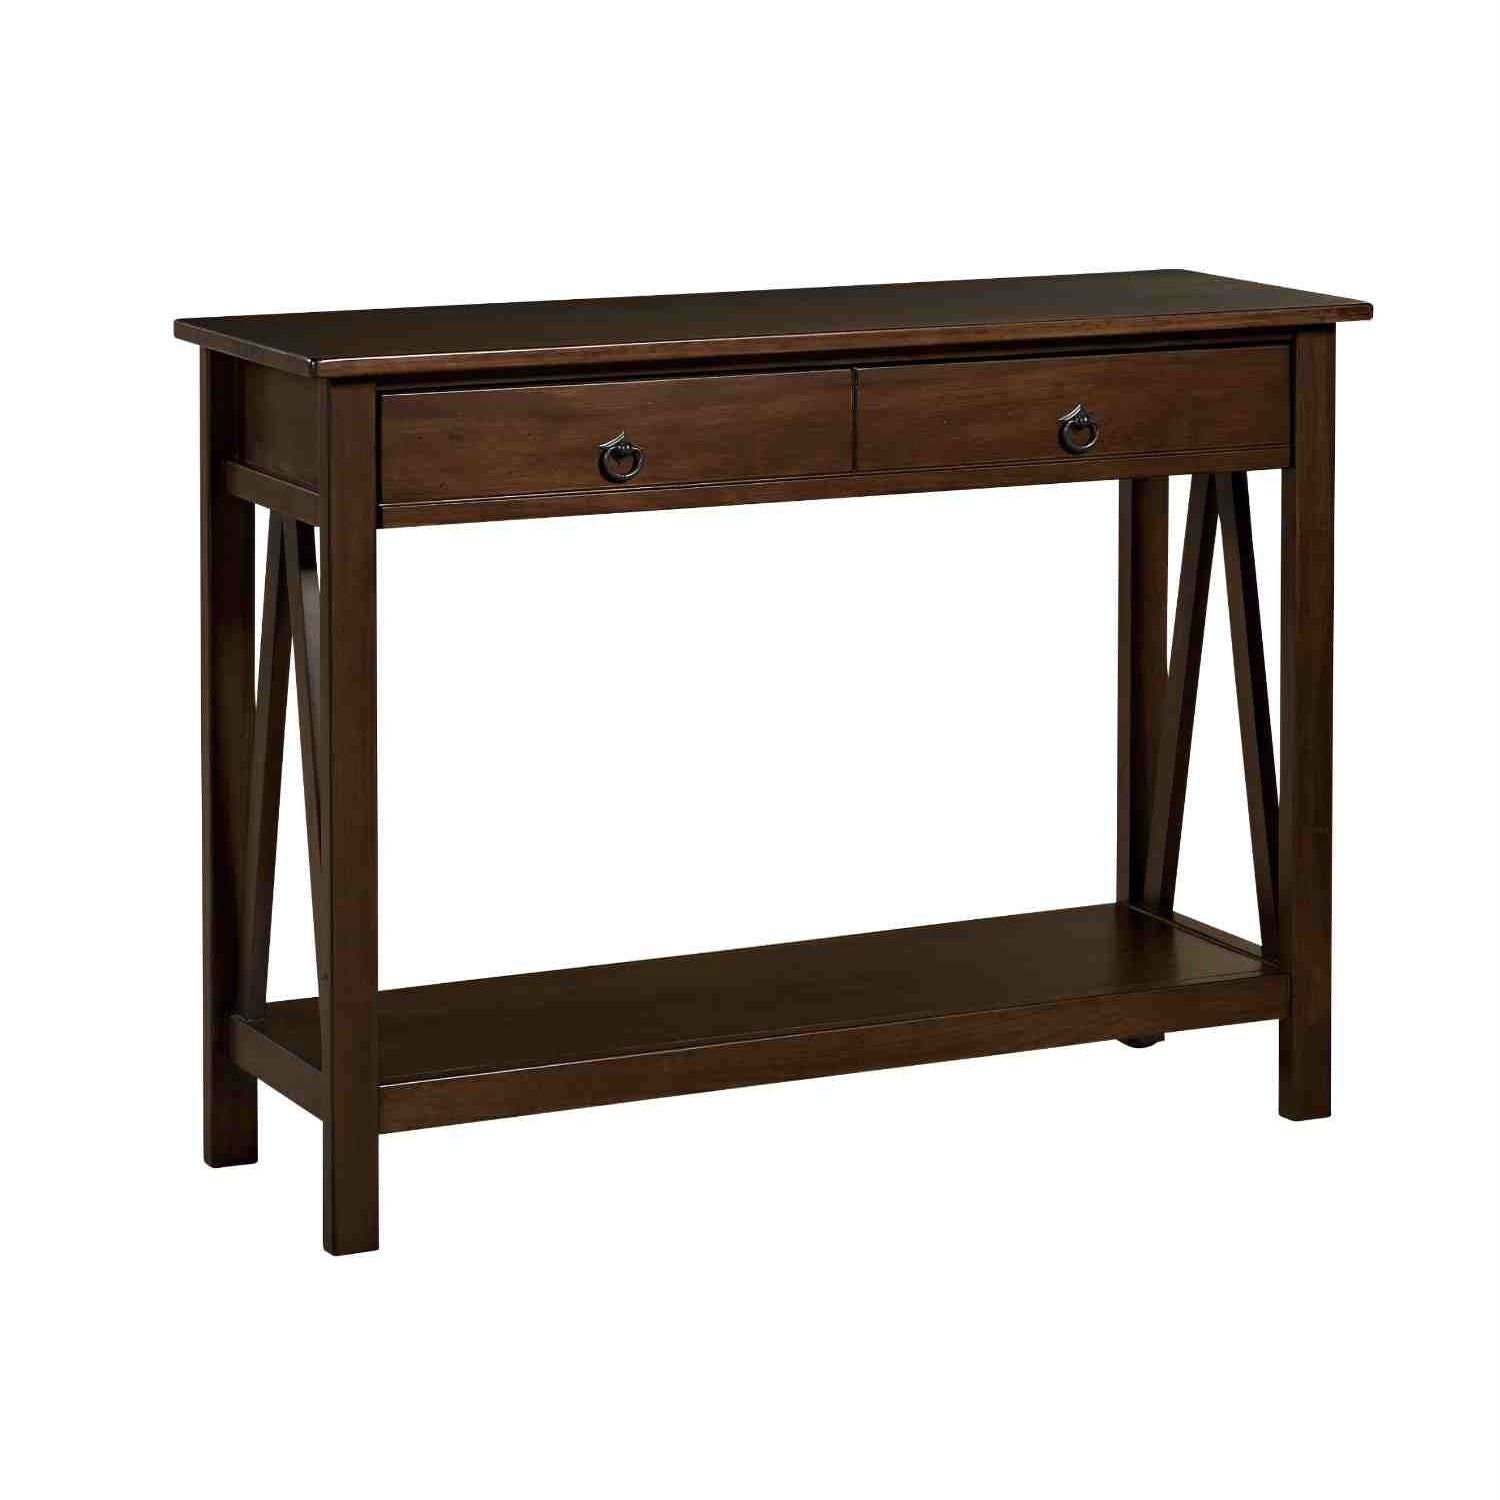 2 Drawer Console Sofa Table Living Room Storage Shelf in Tobacco Brown